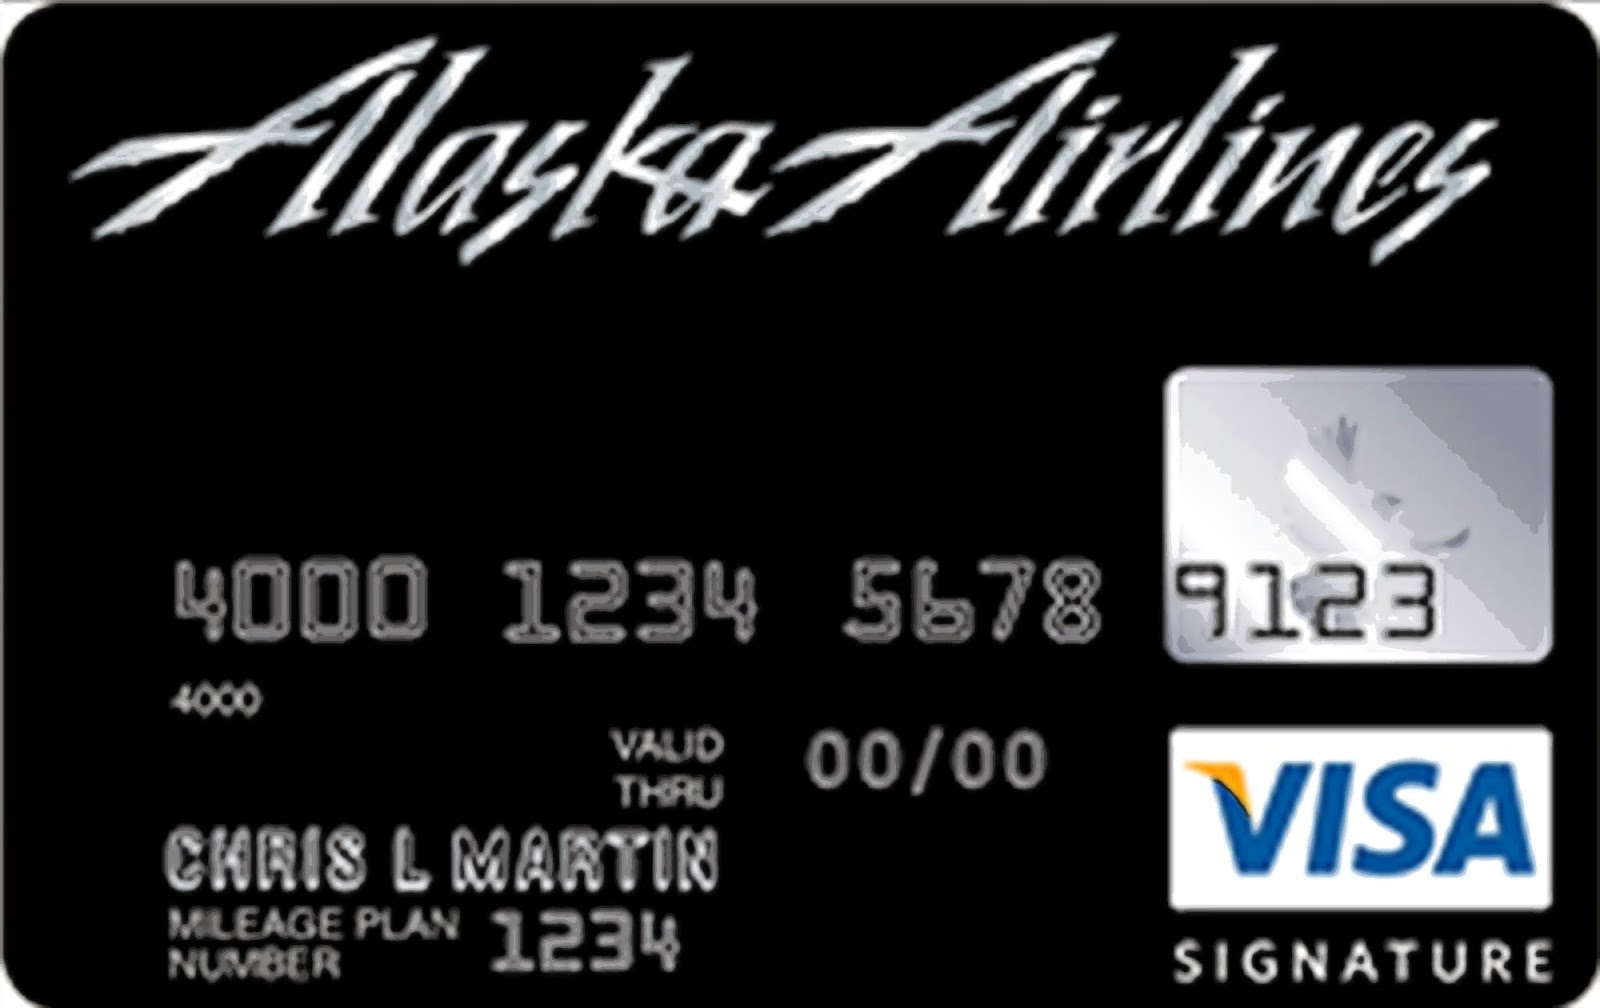 Business Credit Card Alaska Airlines Choice Image Card Design And